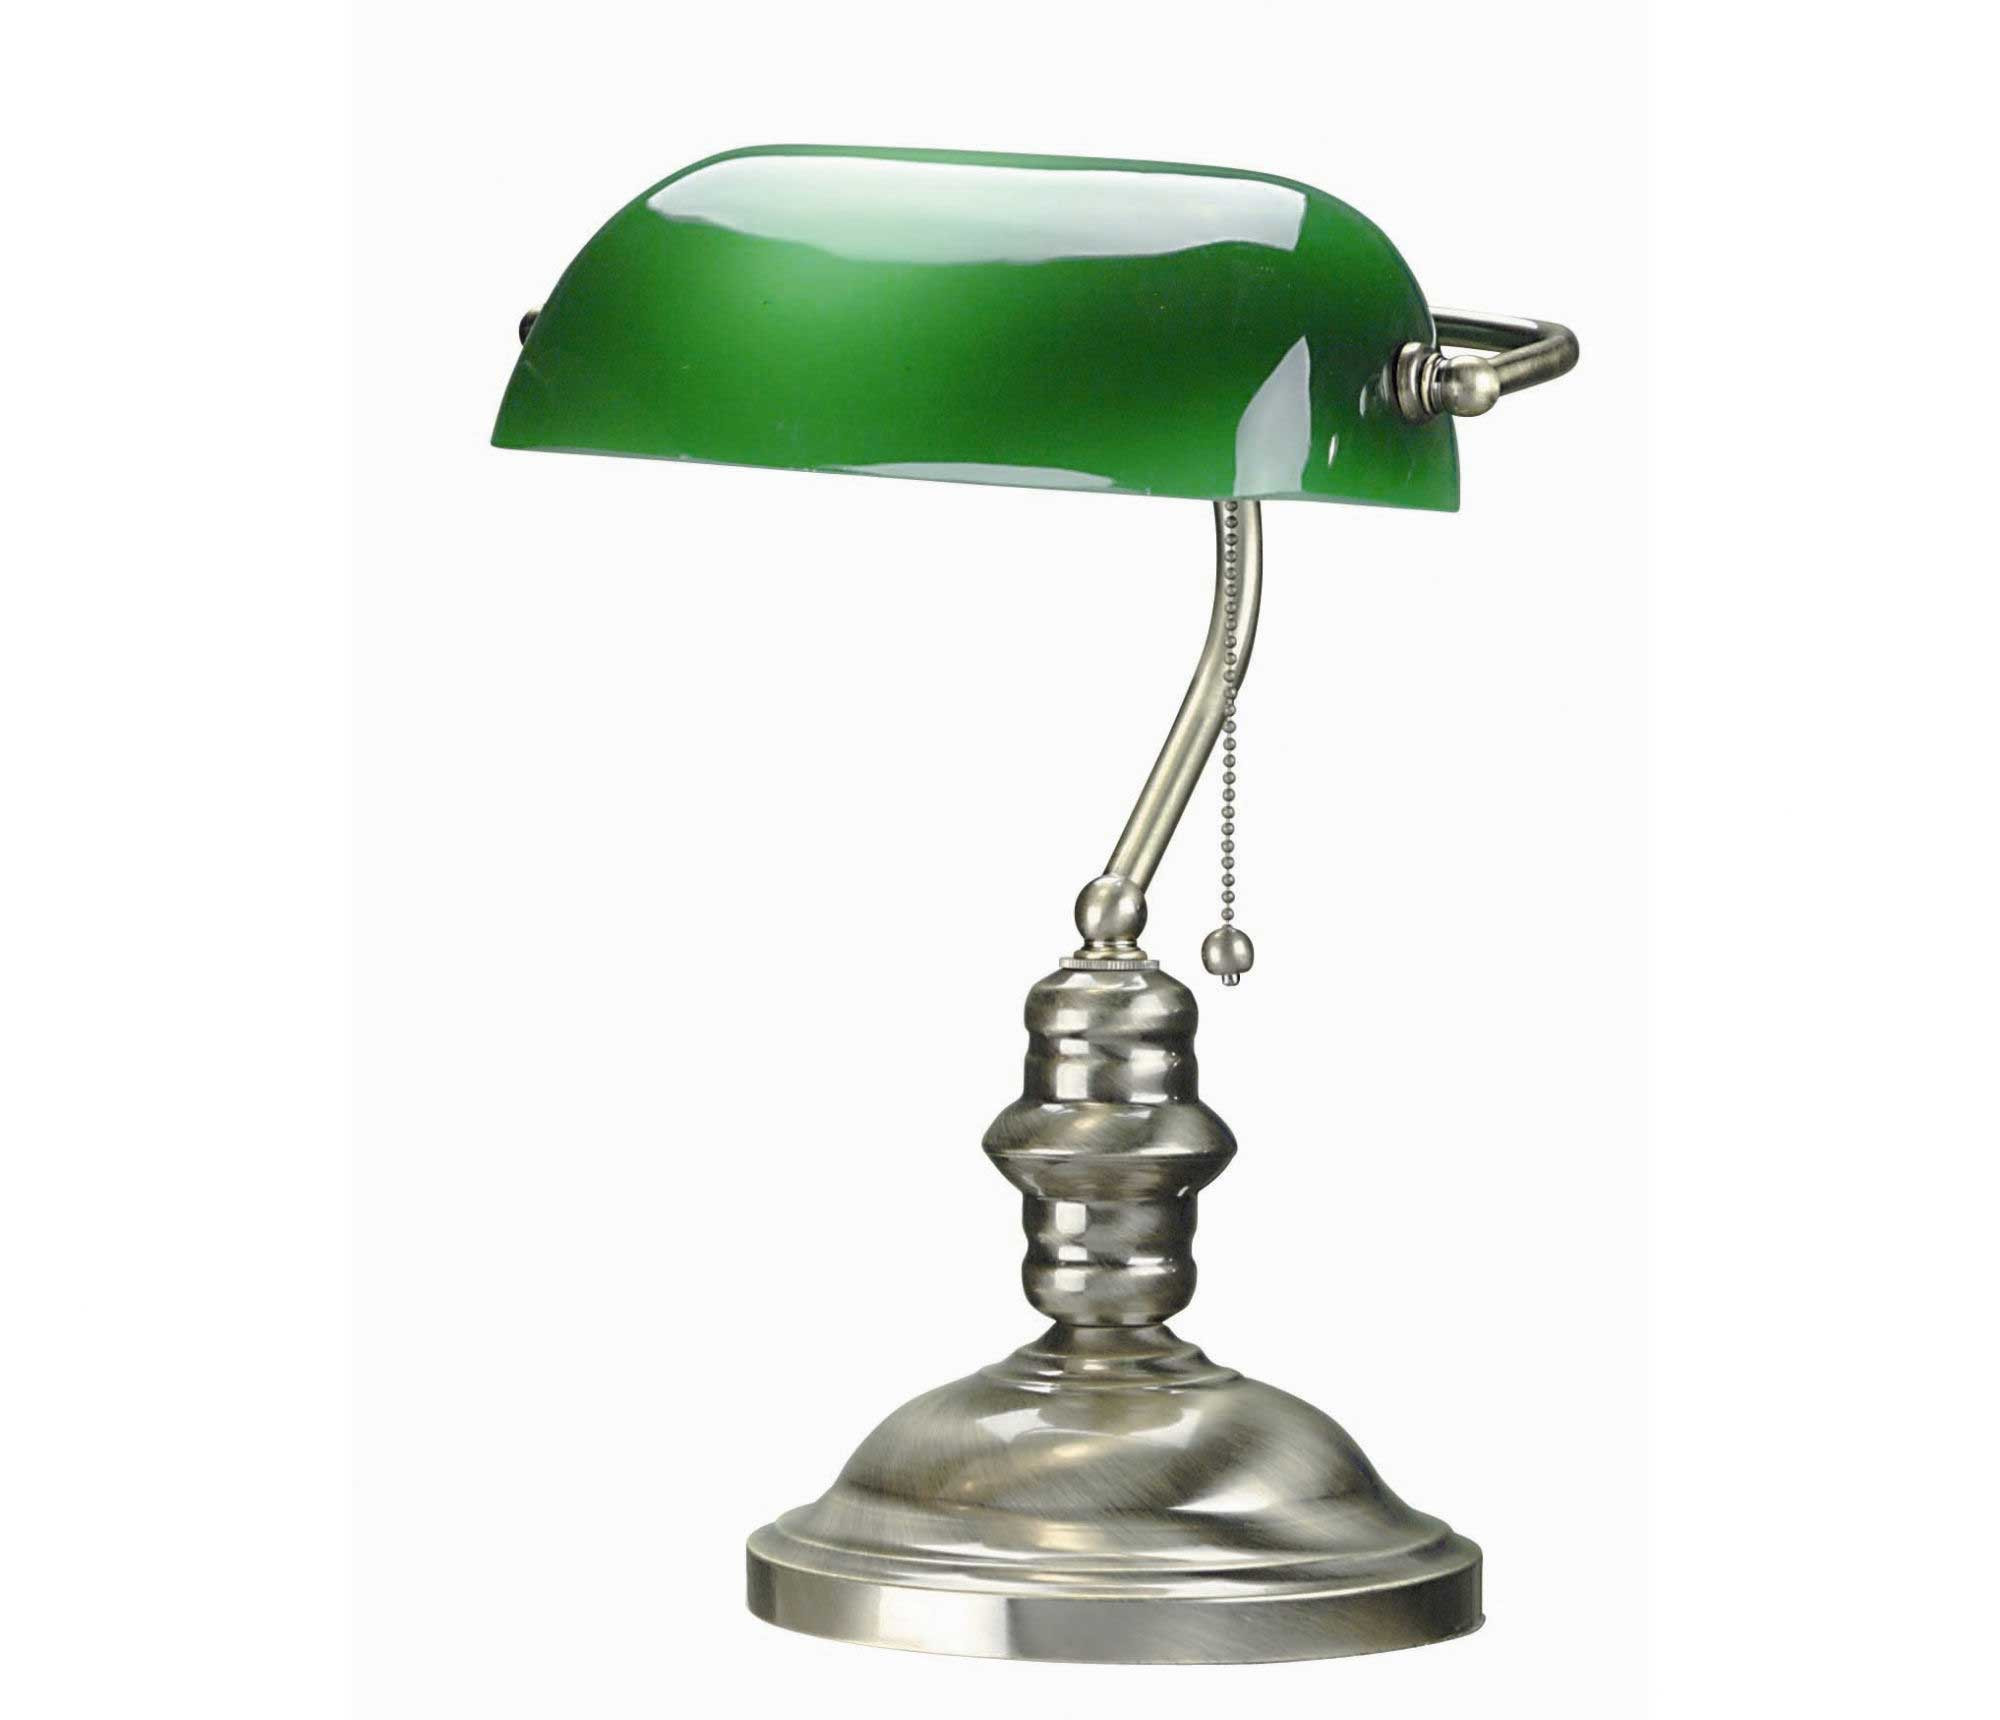 Best ideas about Bankers Desk Lamp . Save or Pin Bankers Desk Lamp for Replacement Shade Now.